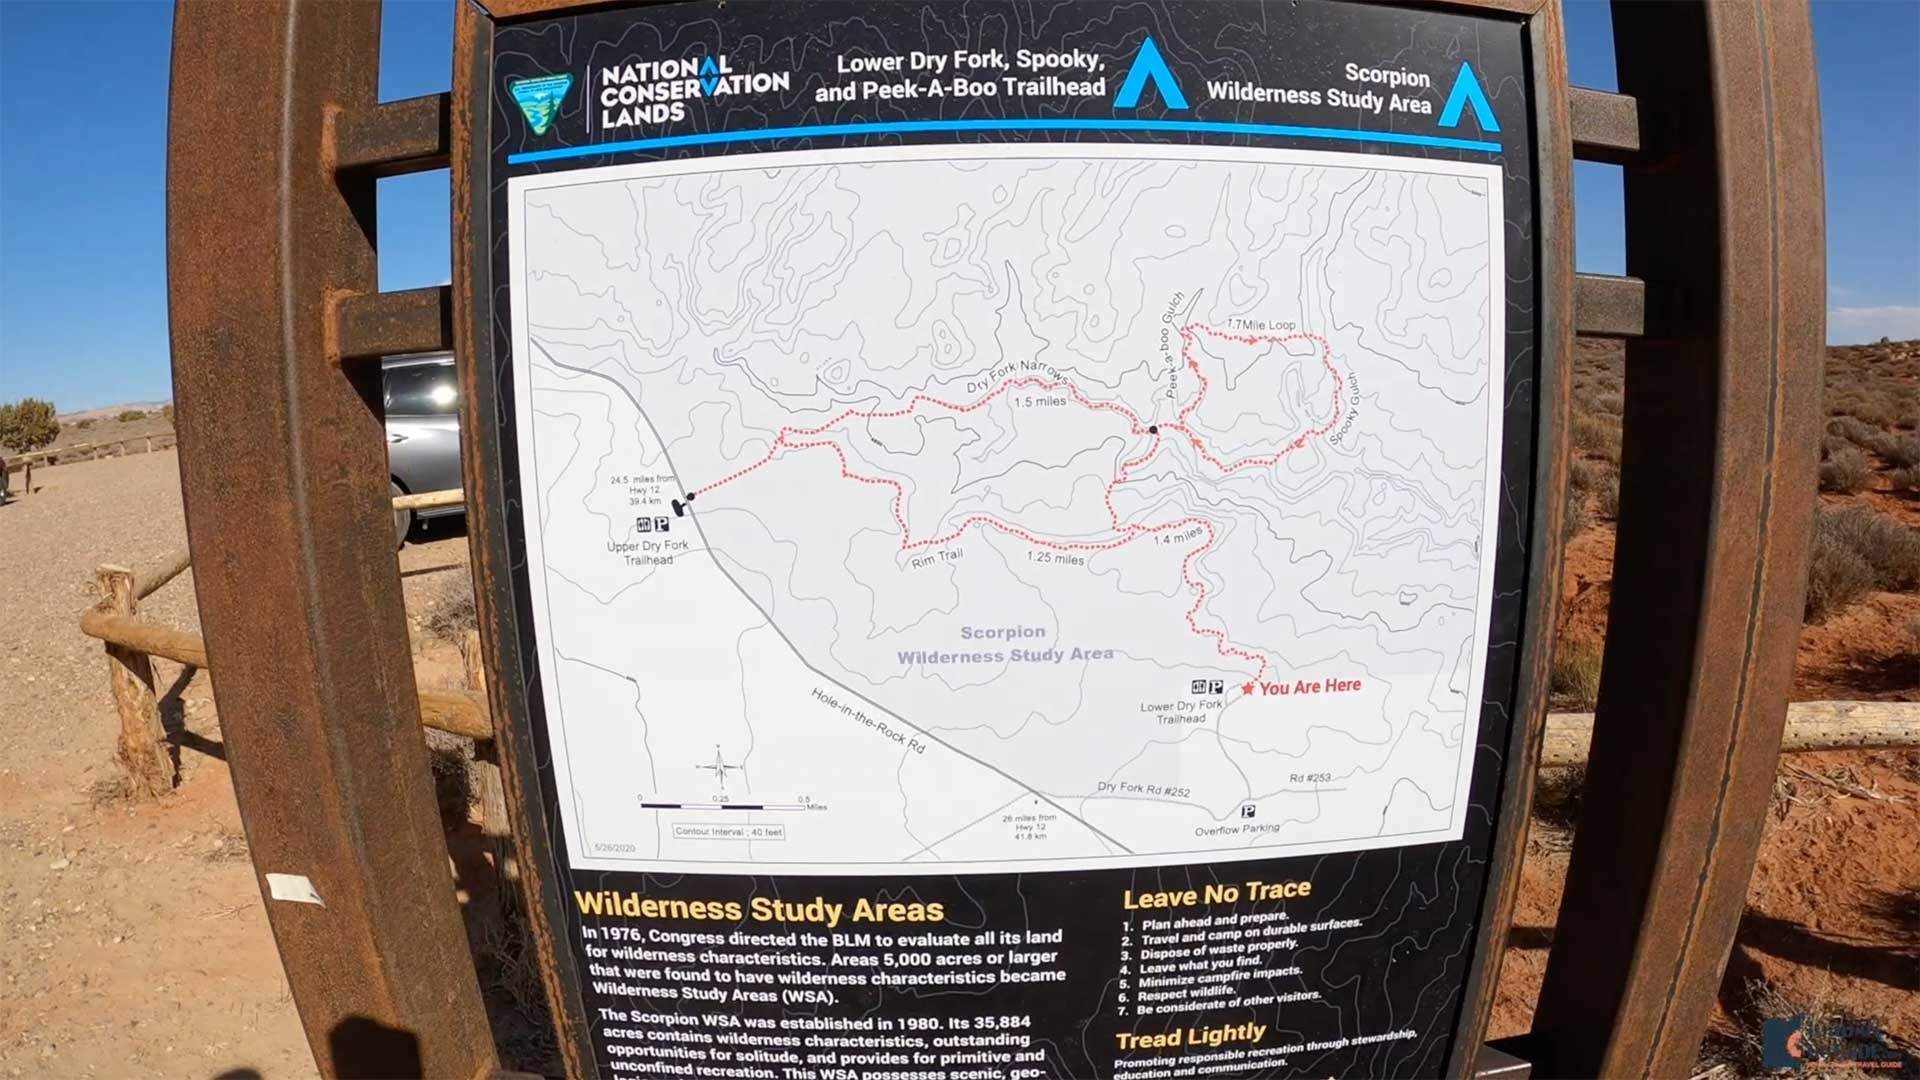 The Lower Dry Fork, Spooky, and Peek-A-Boo Trailhead Map